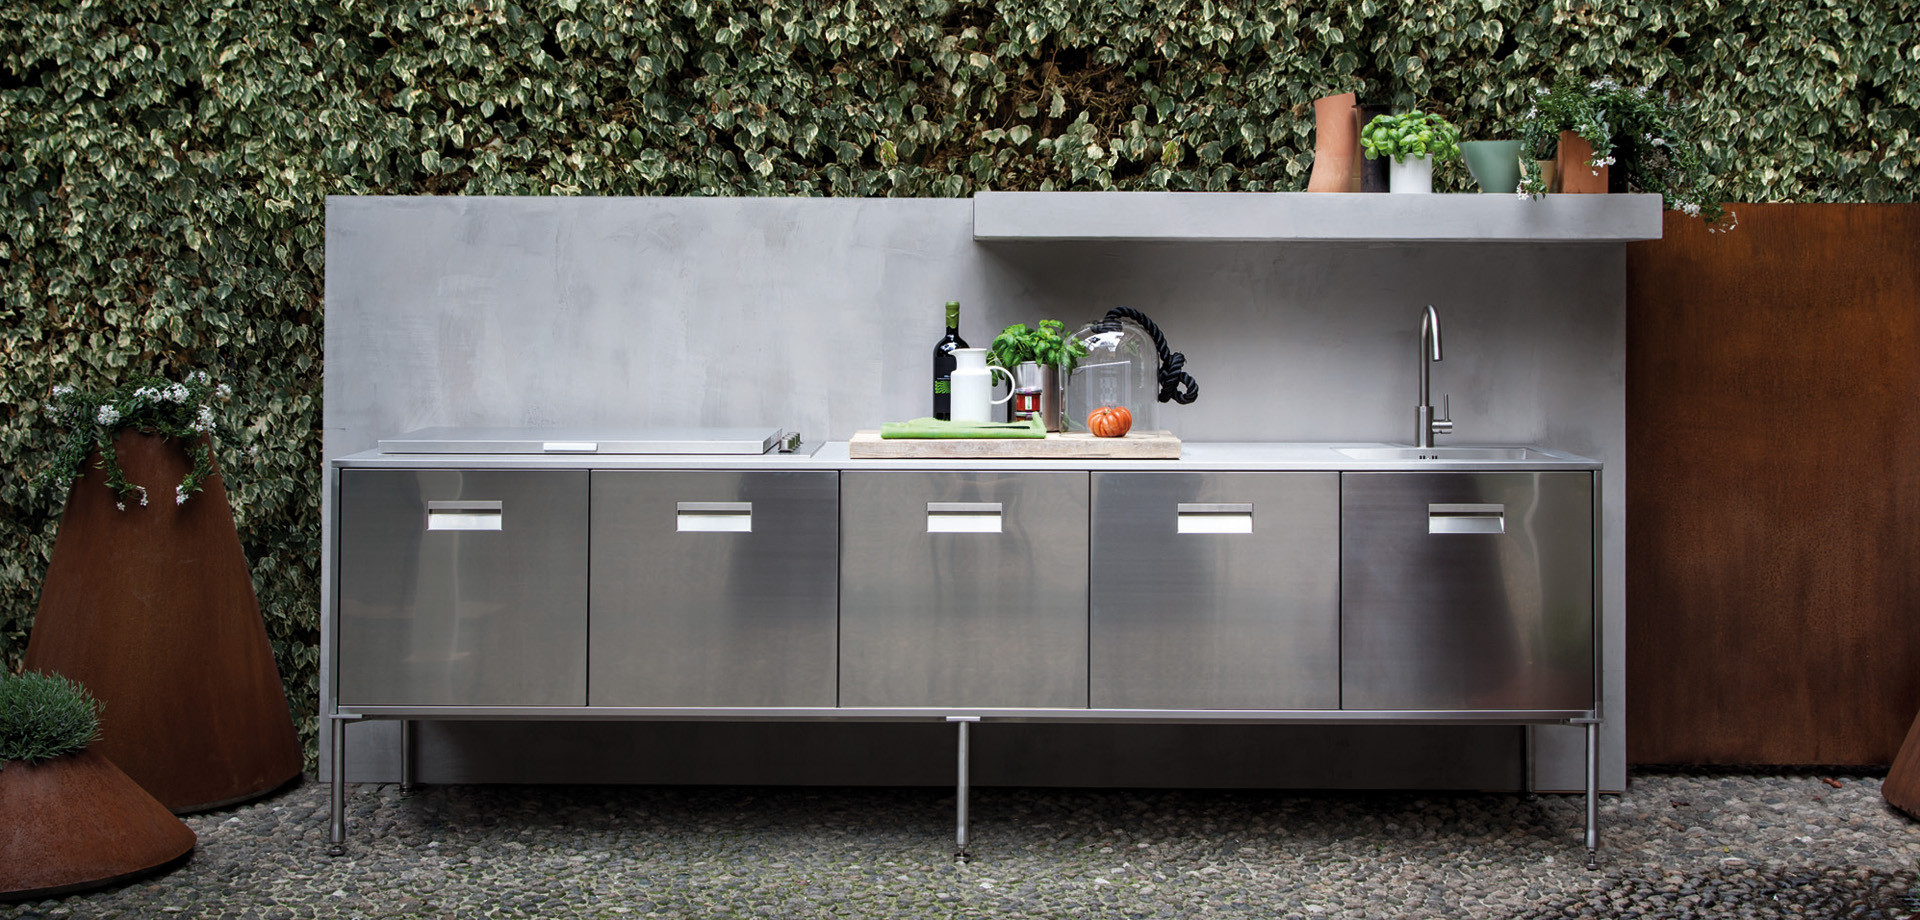 OUTDOOR KITCHENS, Models - Arclinea